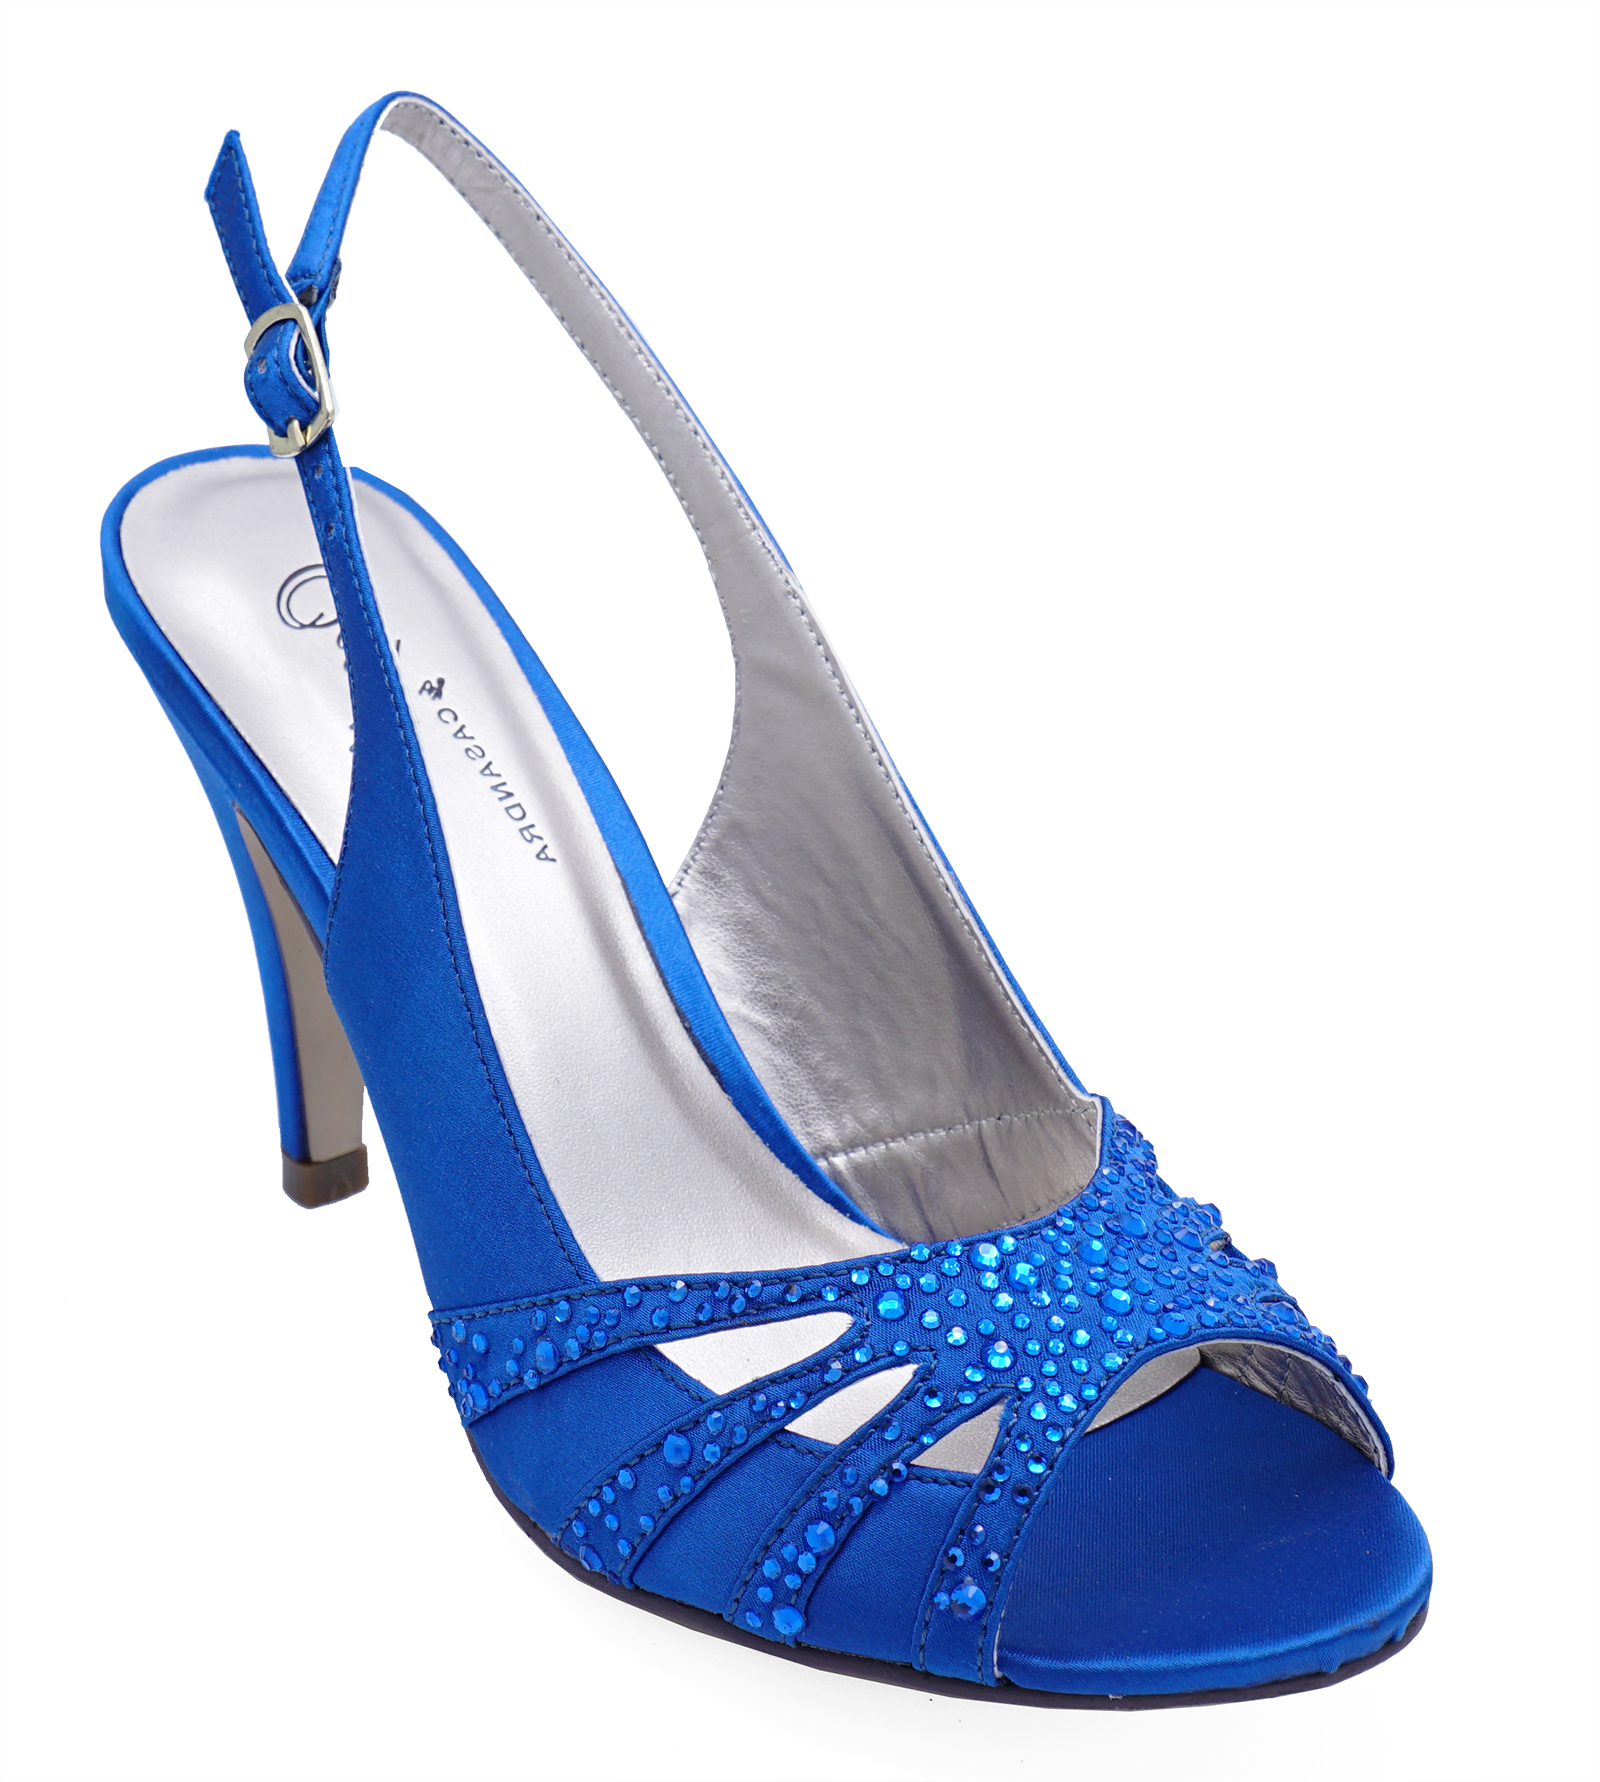 30d6caf35e957 Details about LADIES BLUE OPEN-TOE SLINGBACK DIAMANTE WEDDING EVENING PARTY  PROM SHOES UK 3-8